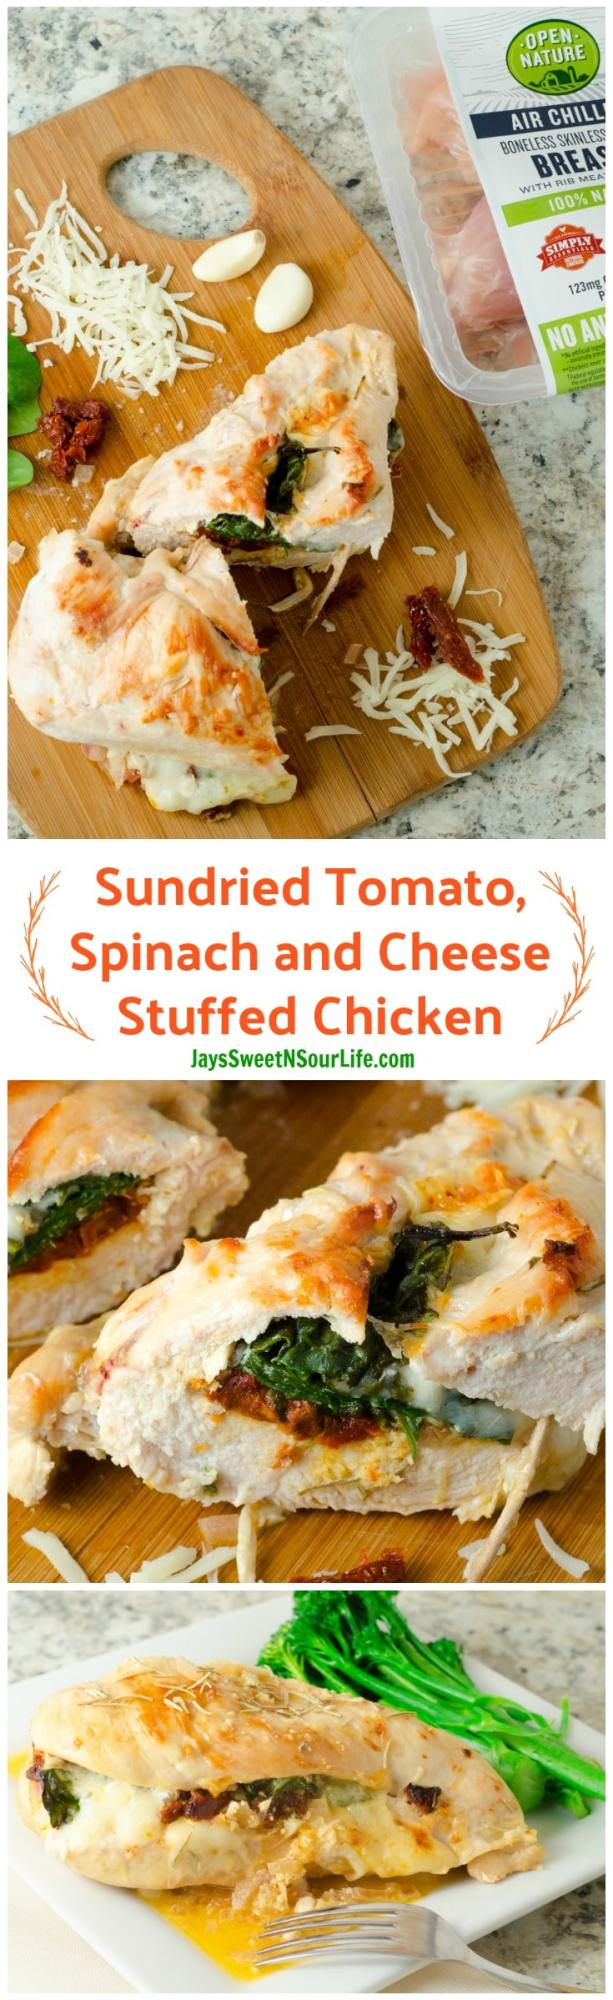 undried Tomato, Spinach and Cheese Stuffed Chicken is the perfect dinner entree. Pin this photo on Pinterest to save for a later date.